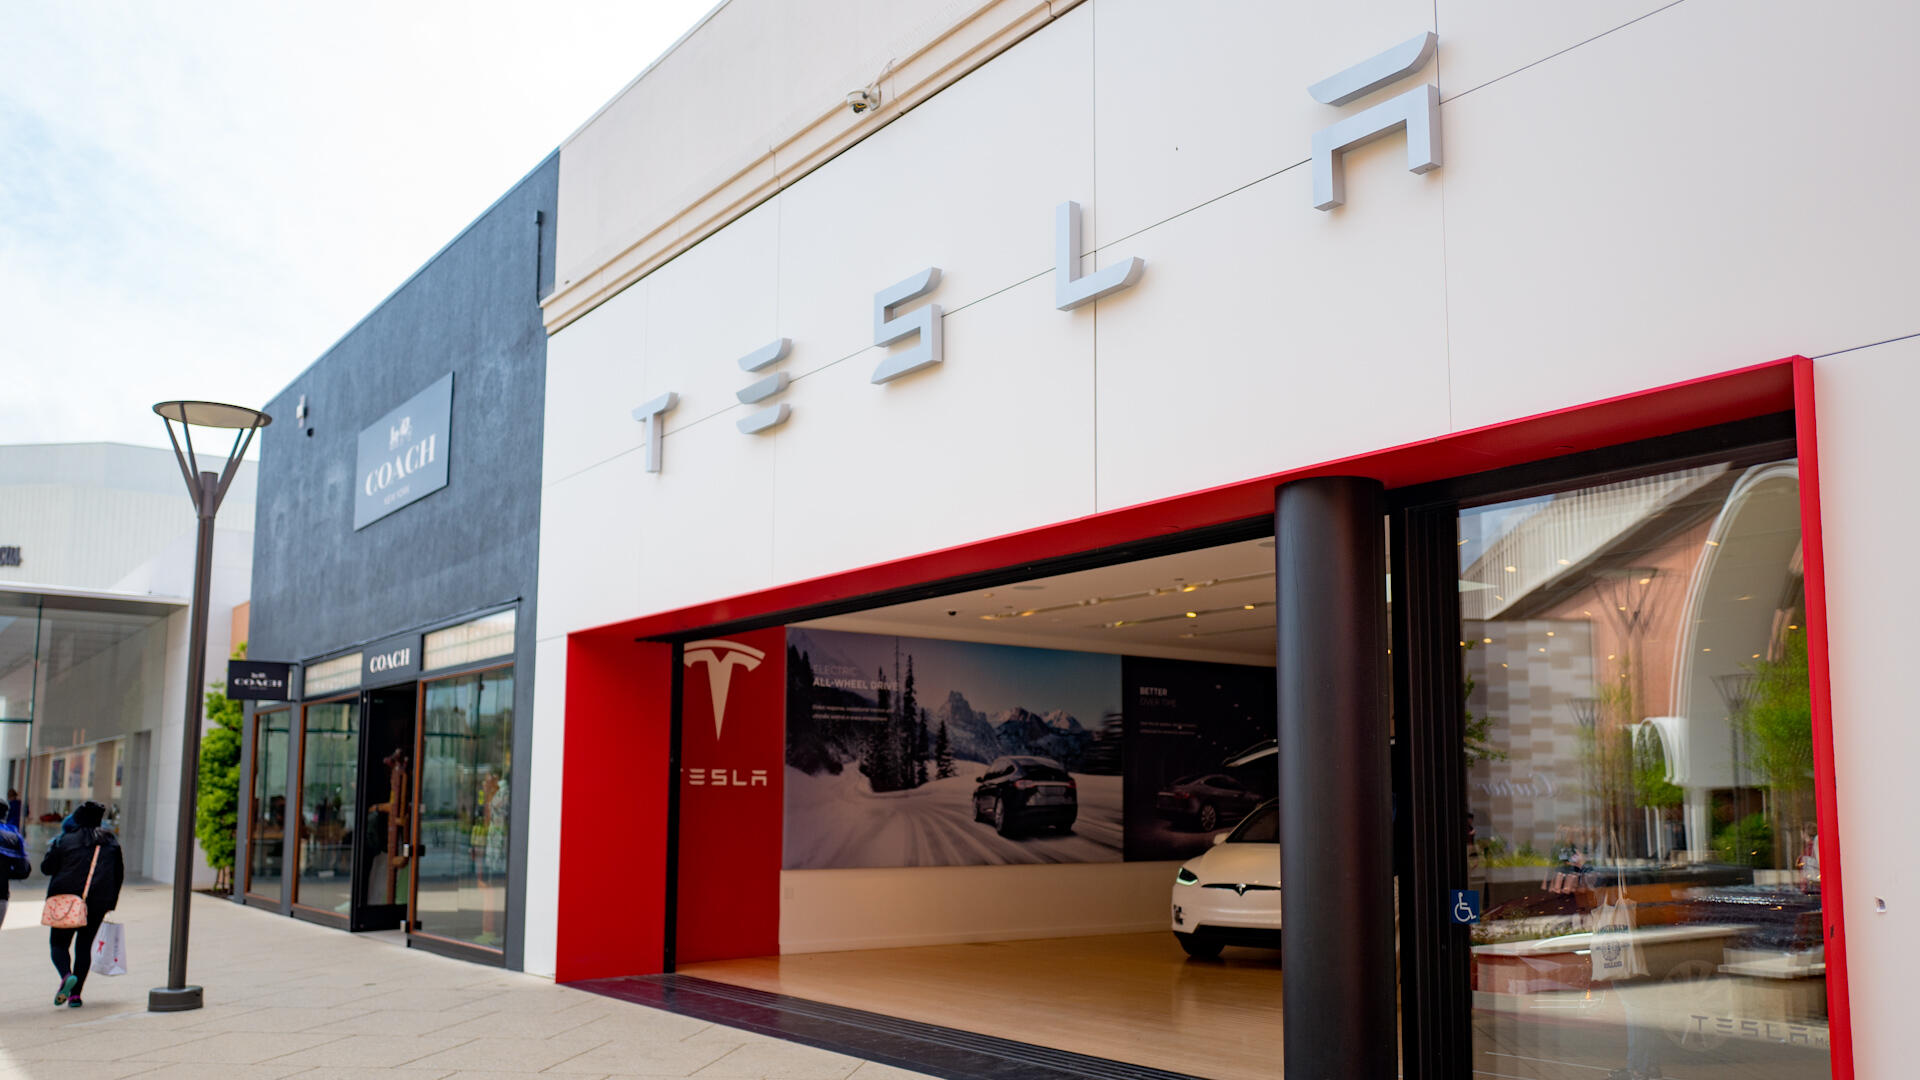 Video: Tesla could shutter showrooms, Twitter adds shopping module